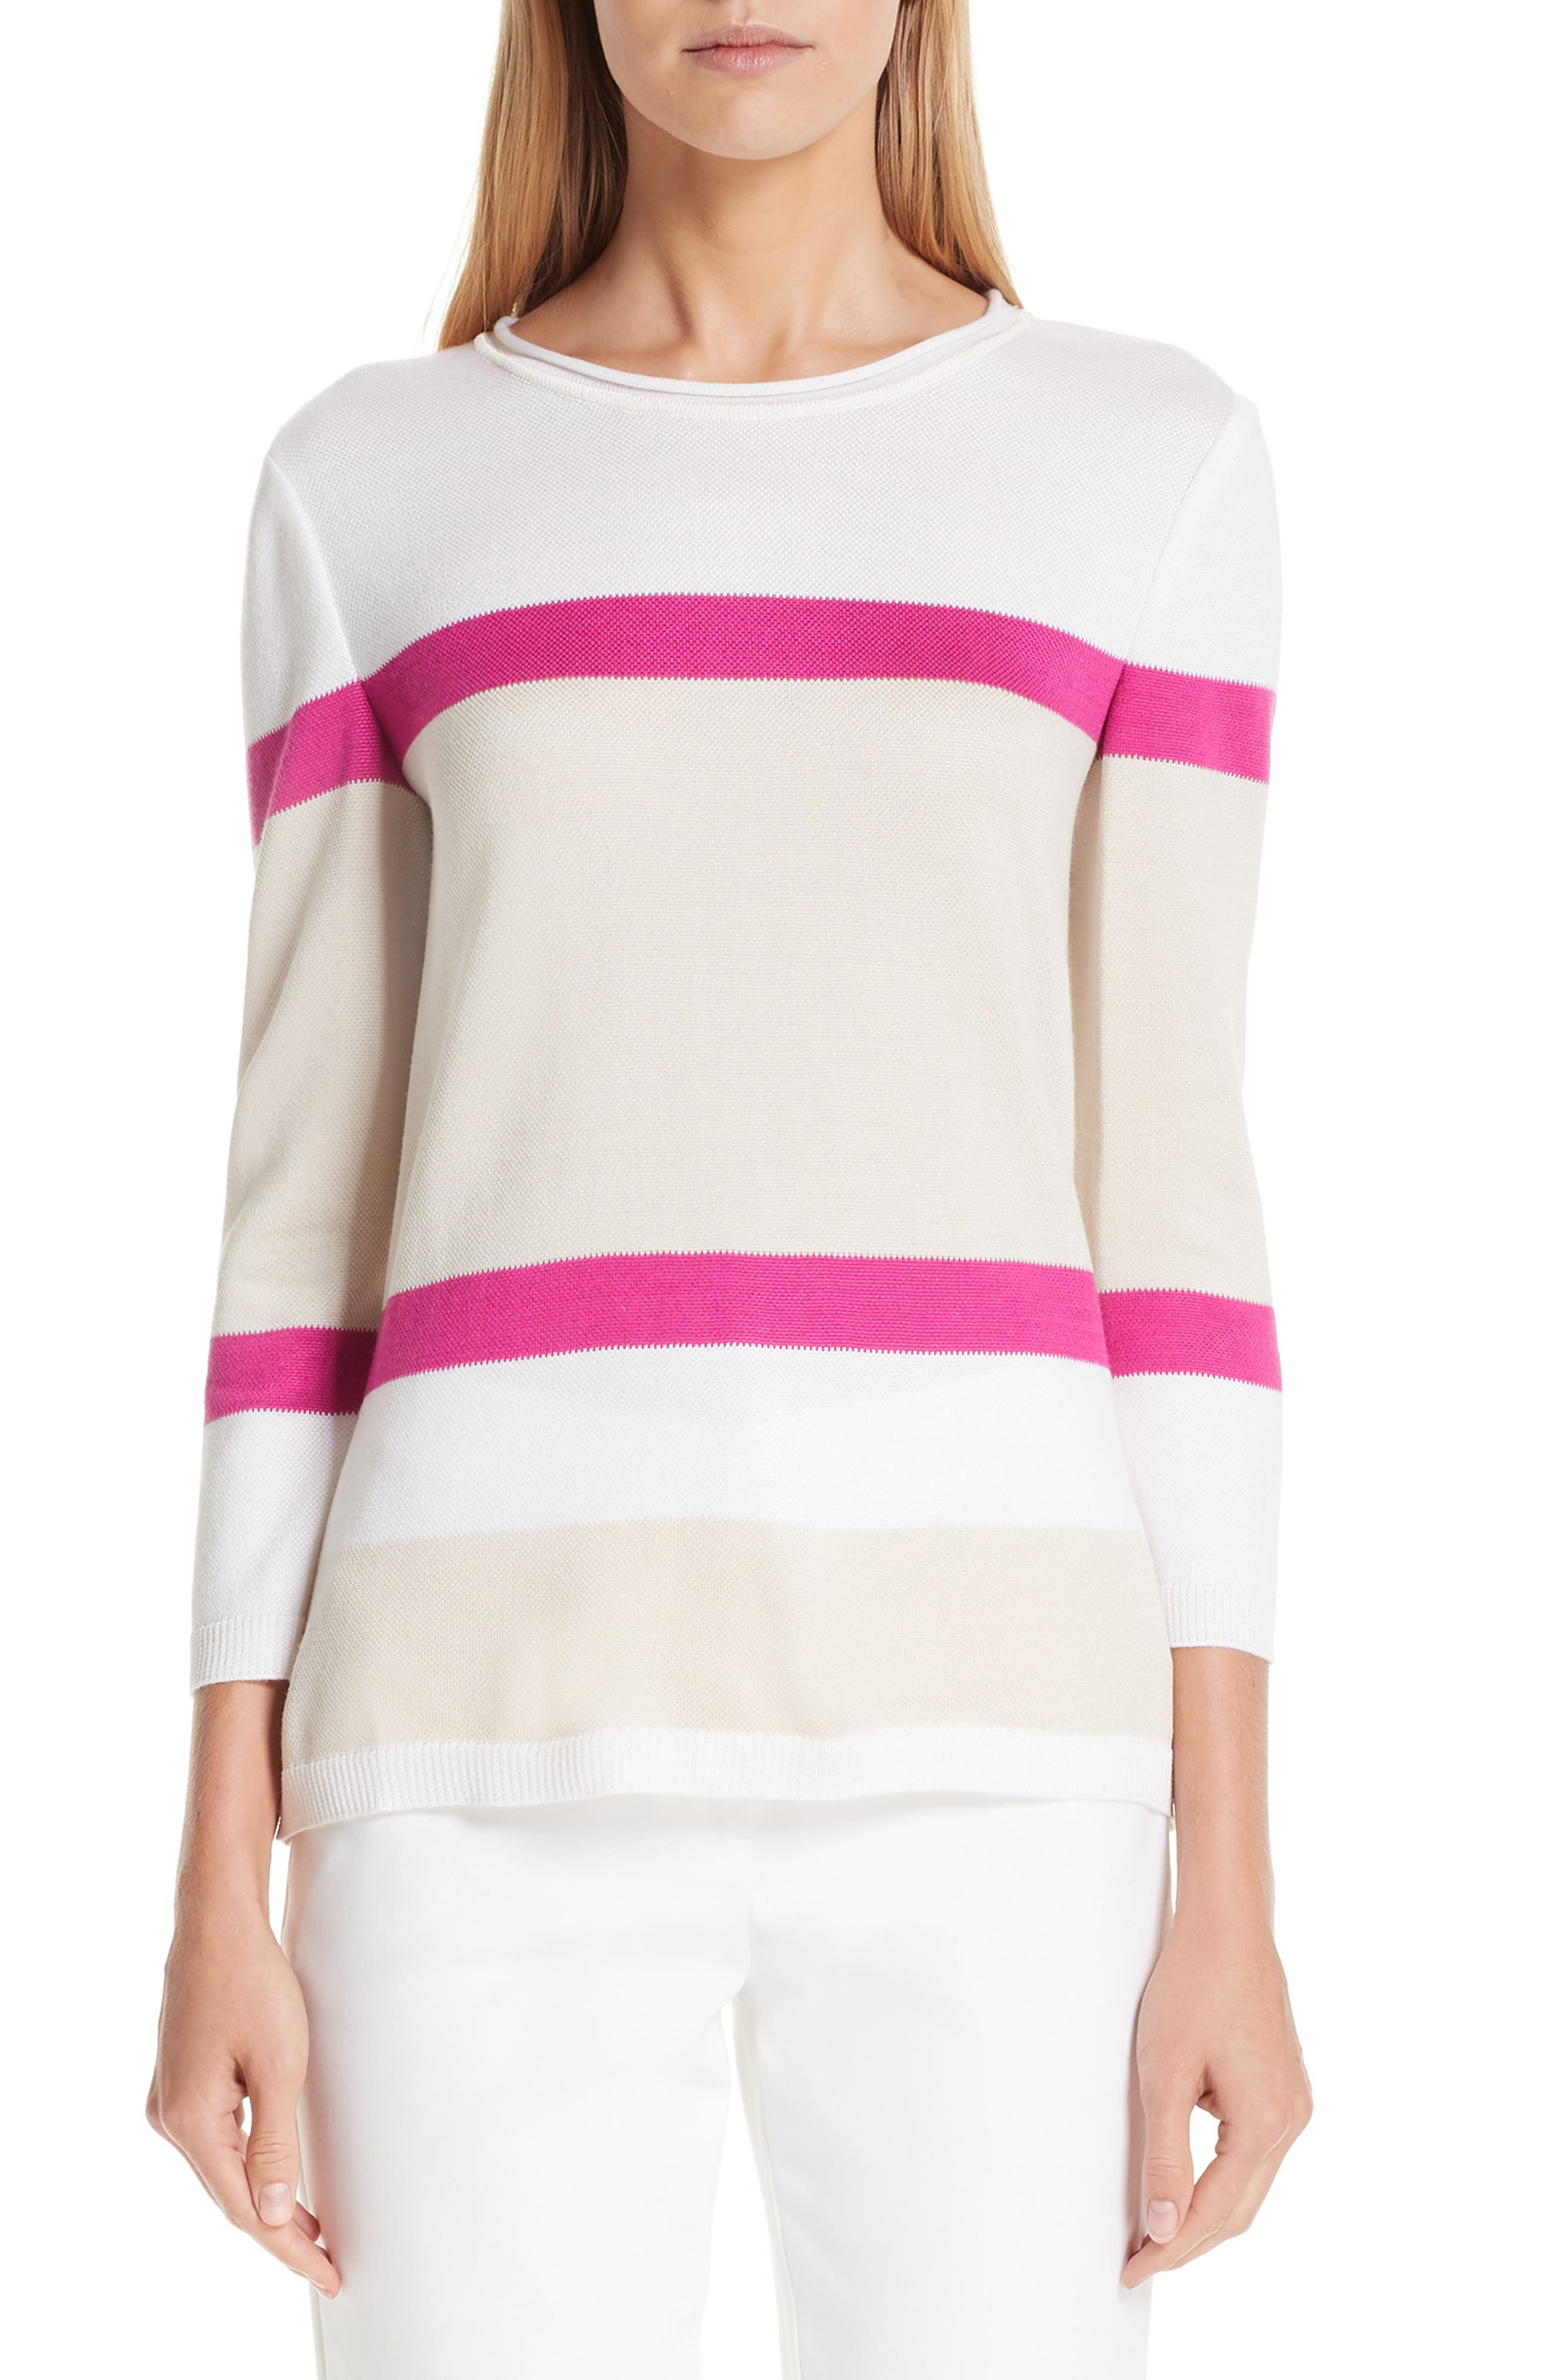 Stripe Float Jacquard Knit 3/4-Sleeve Sweater in Cream/ Oyster/ Camilla